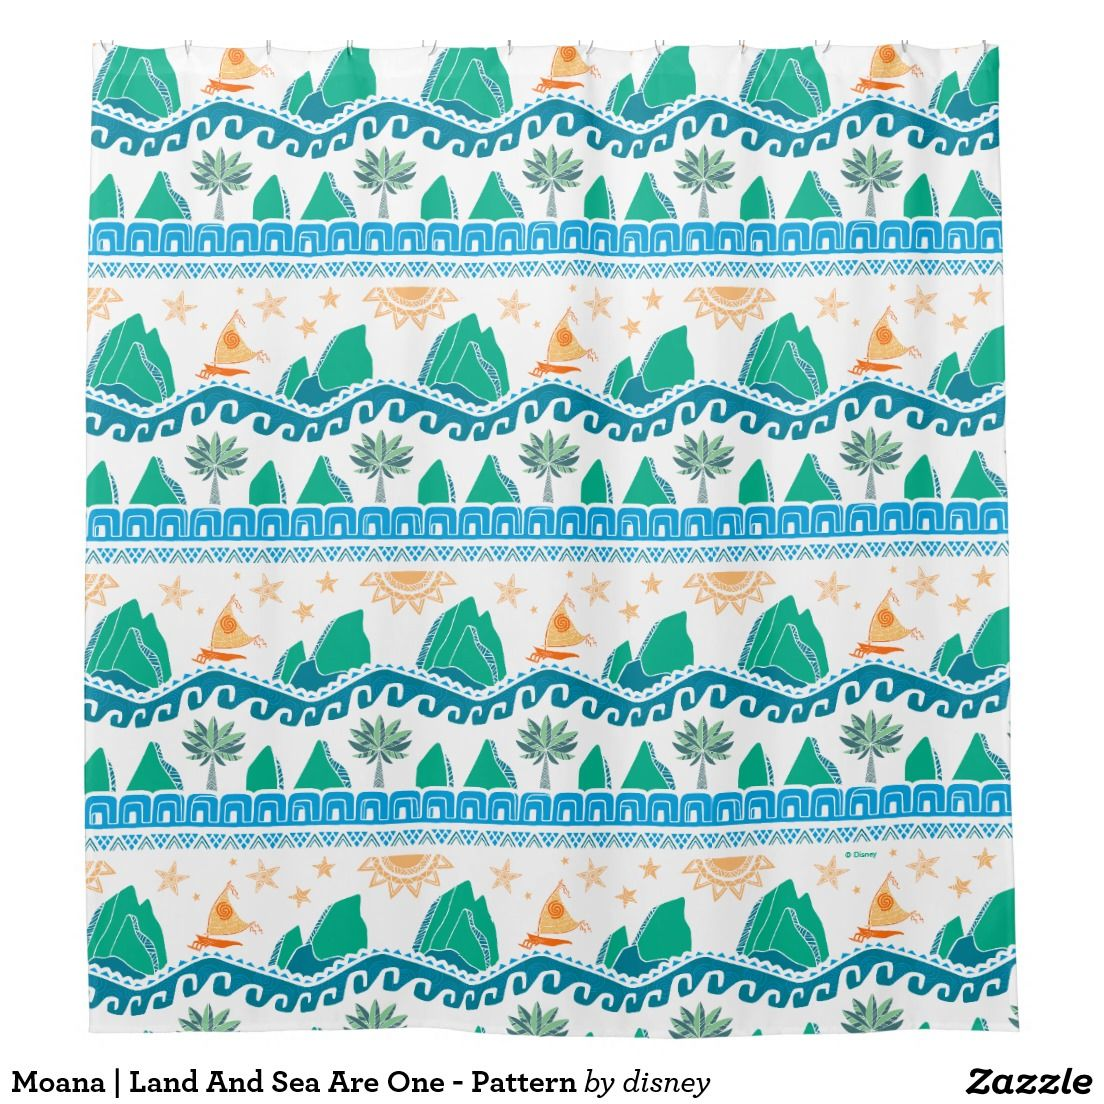 Moana Land And Sea Are One Pattern Shower Curtain Zazzle Com Patterned Shower Curtain Moana New Bathroom Ideas